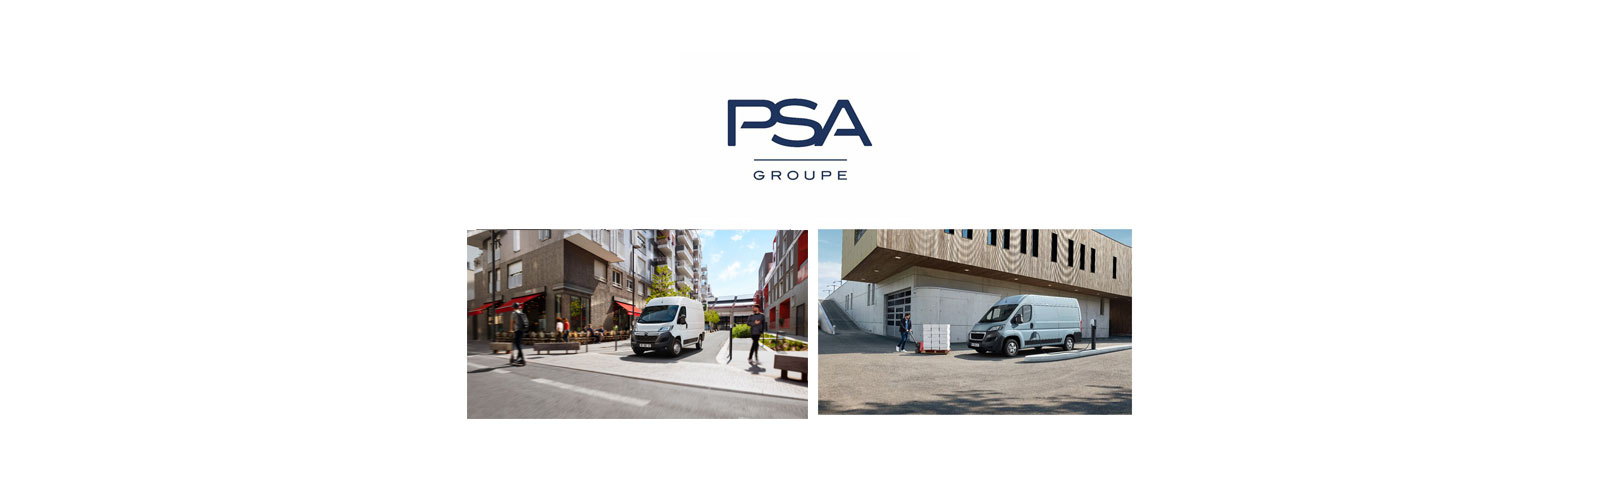 Groupe PSA presents the all-electric Peugeot Boxer and Citroën Jumper